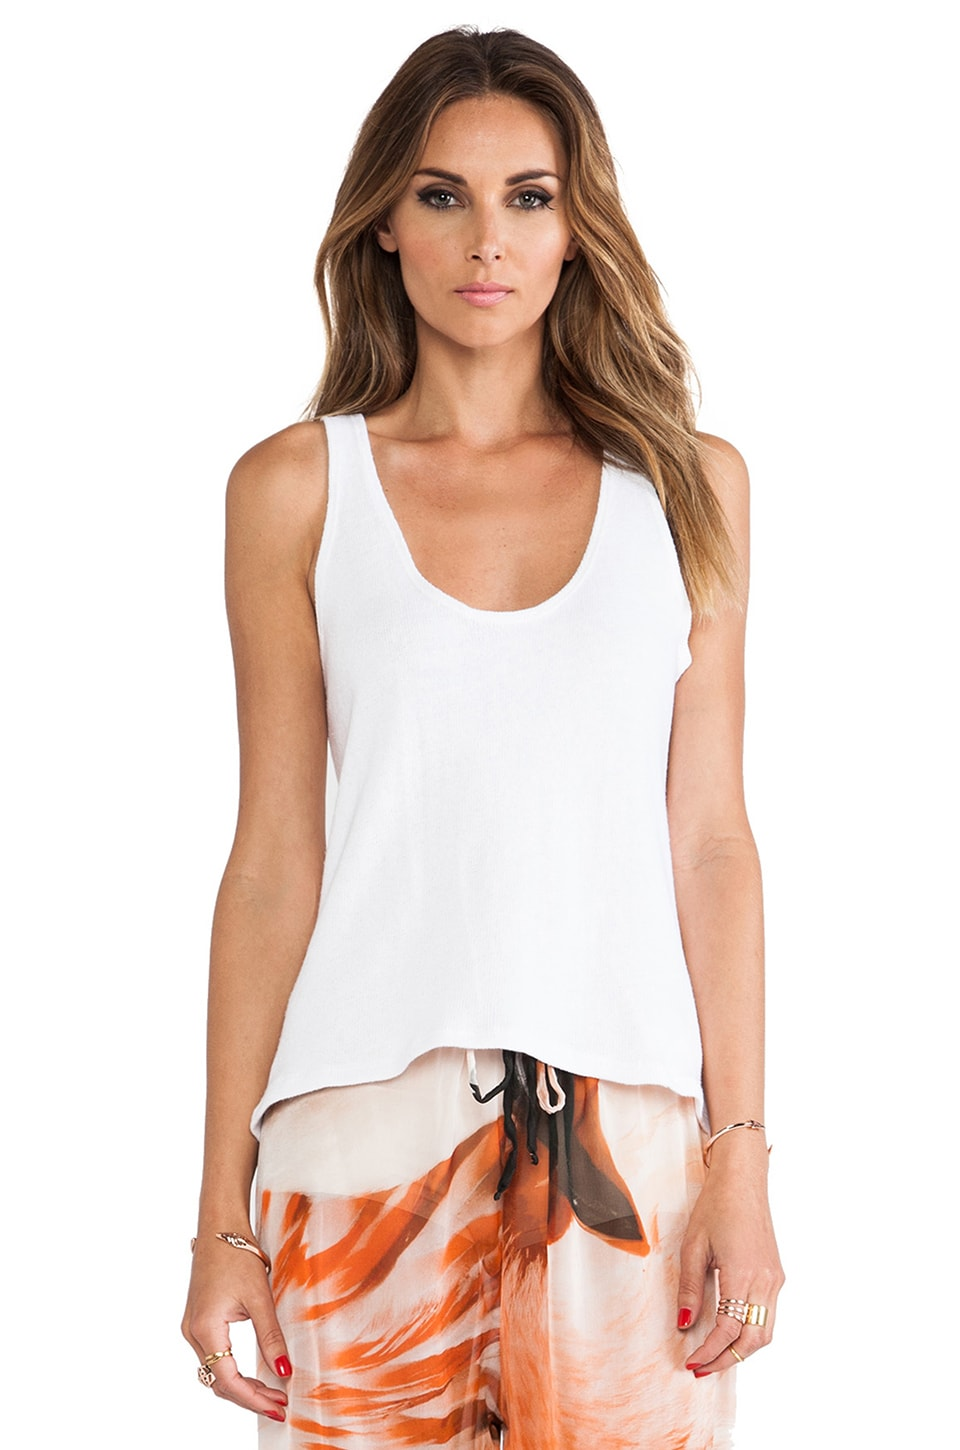 MERRITT CHARLES Savanna Top in Optic White